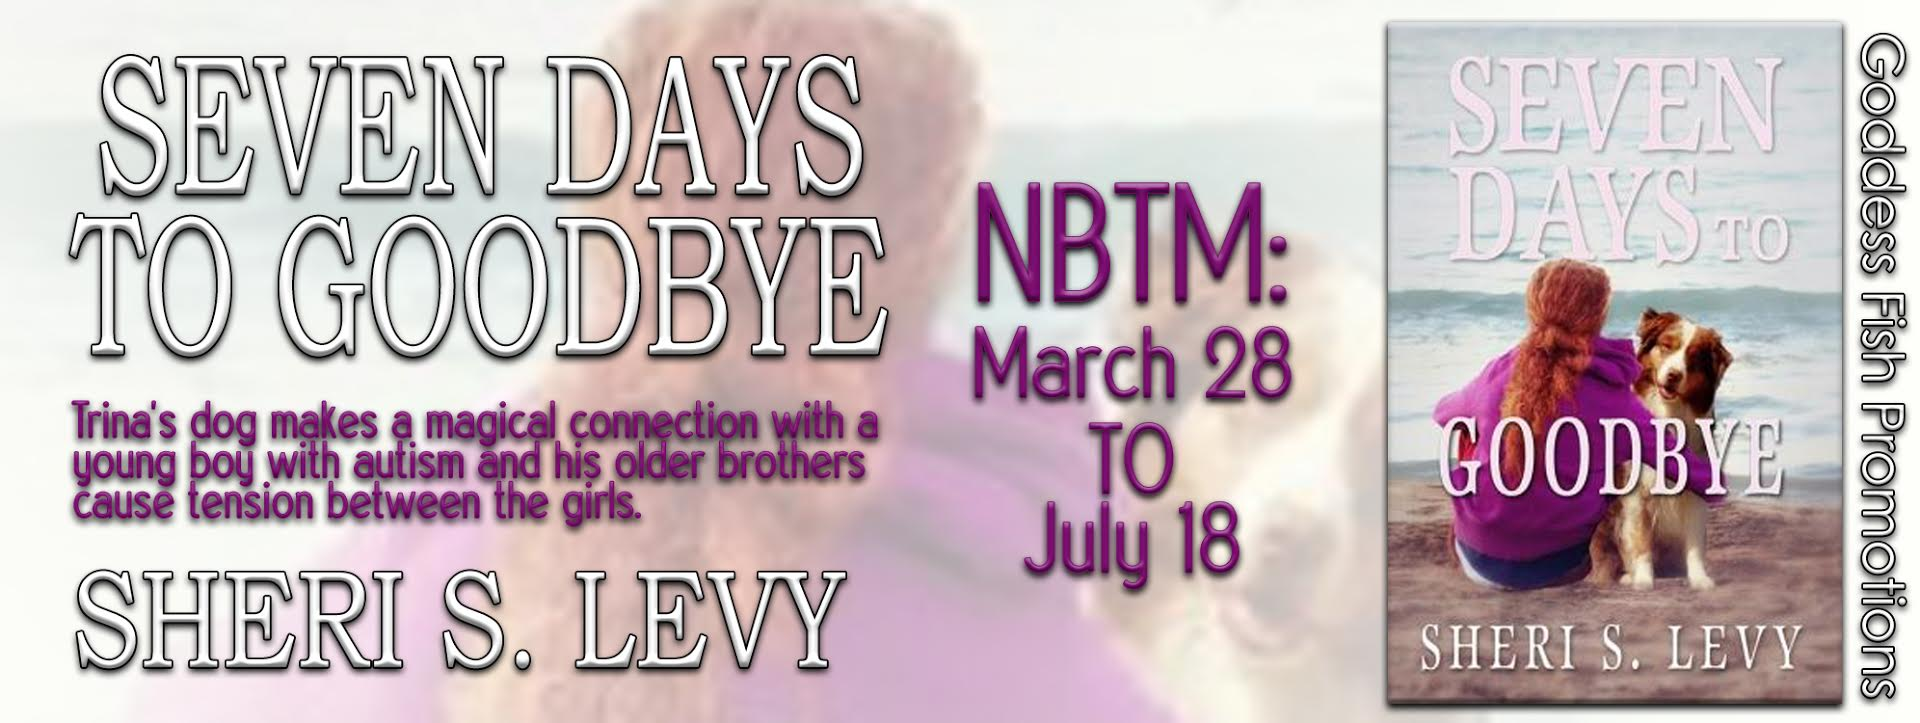 Goddess Fish Promotions Guest Post: Seven Days To Goodbye & Starting Over by Sheri S. Levy